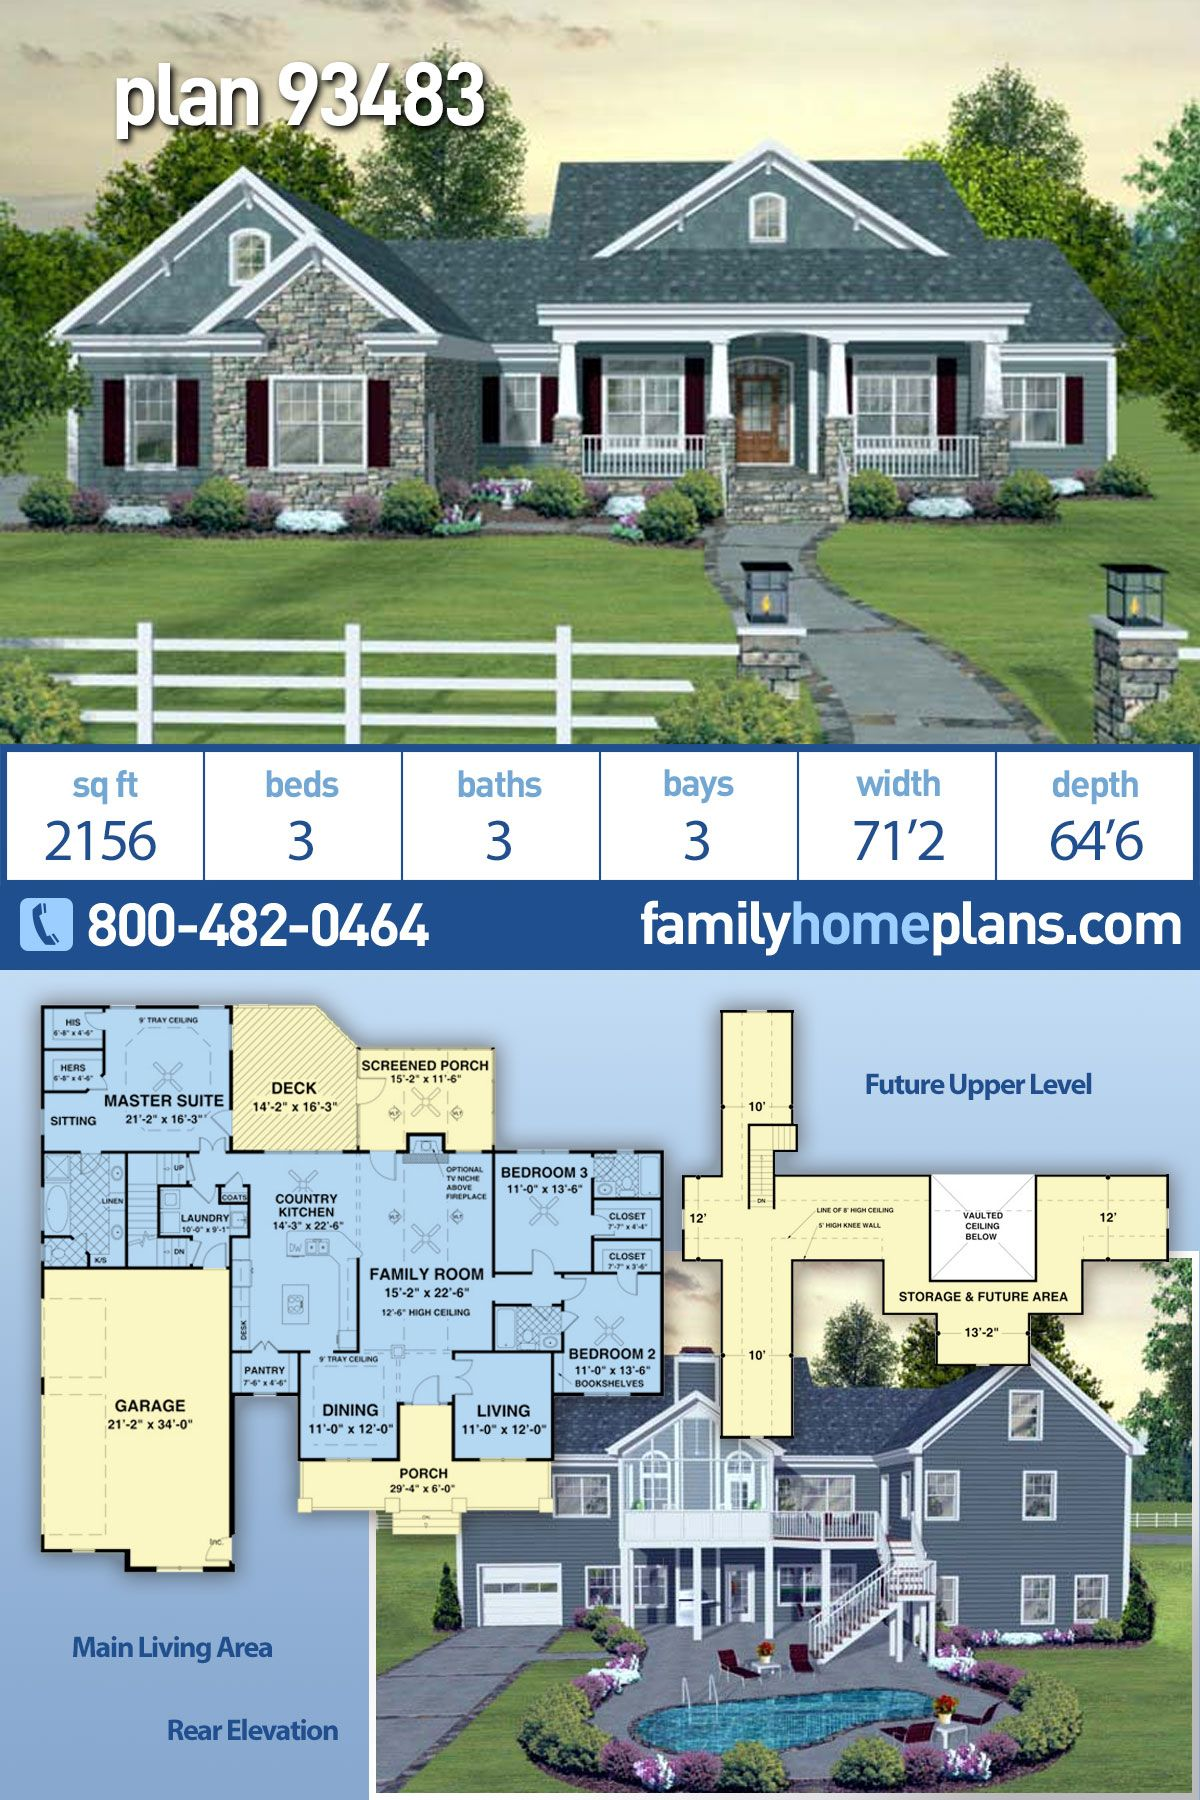 Traditional Style House Plan 93483 With 3 Bed 3 Bath 3 Car Garage Dream House Plans Country House Plans Southern Country Homes